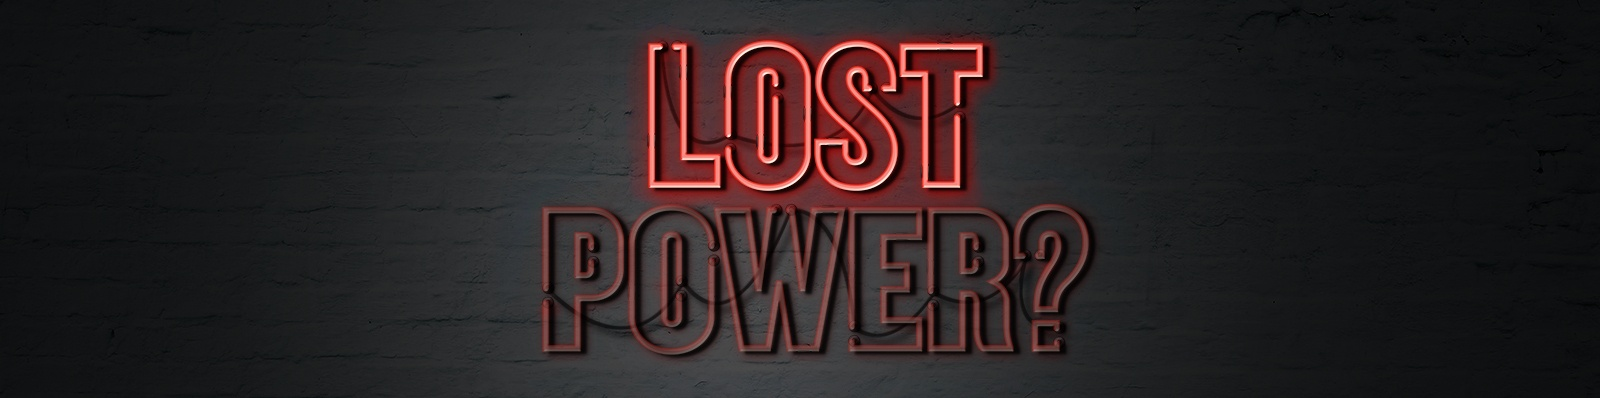 Lost Power?